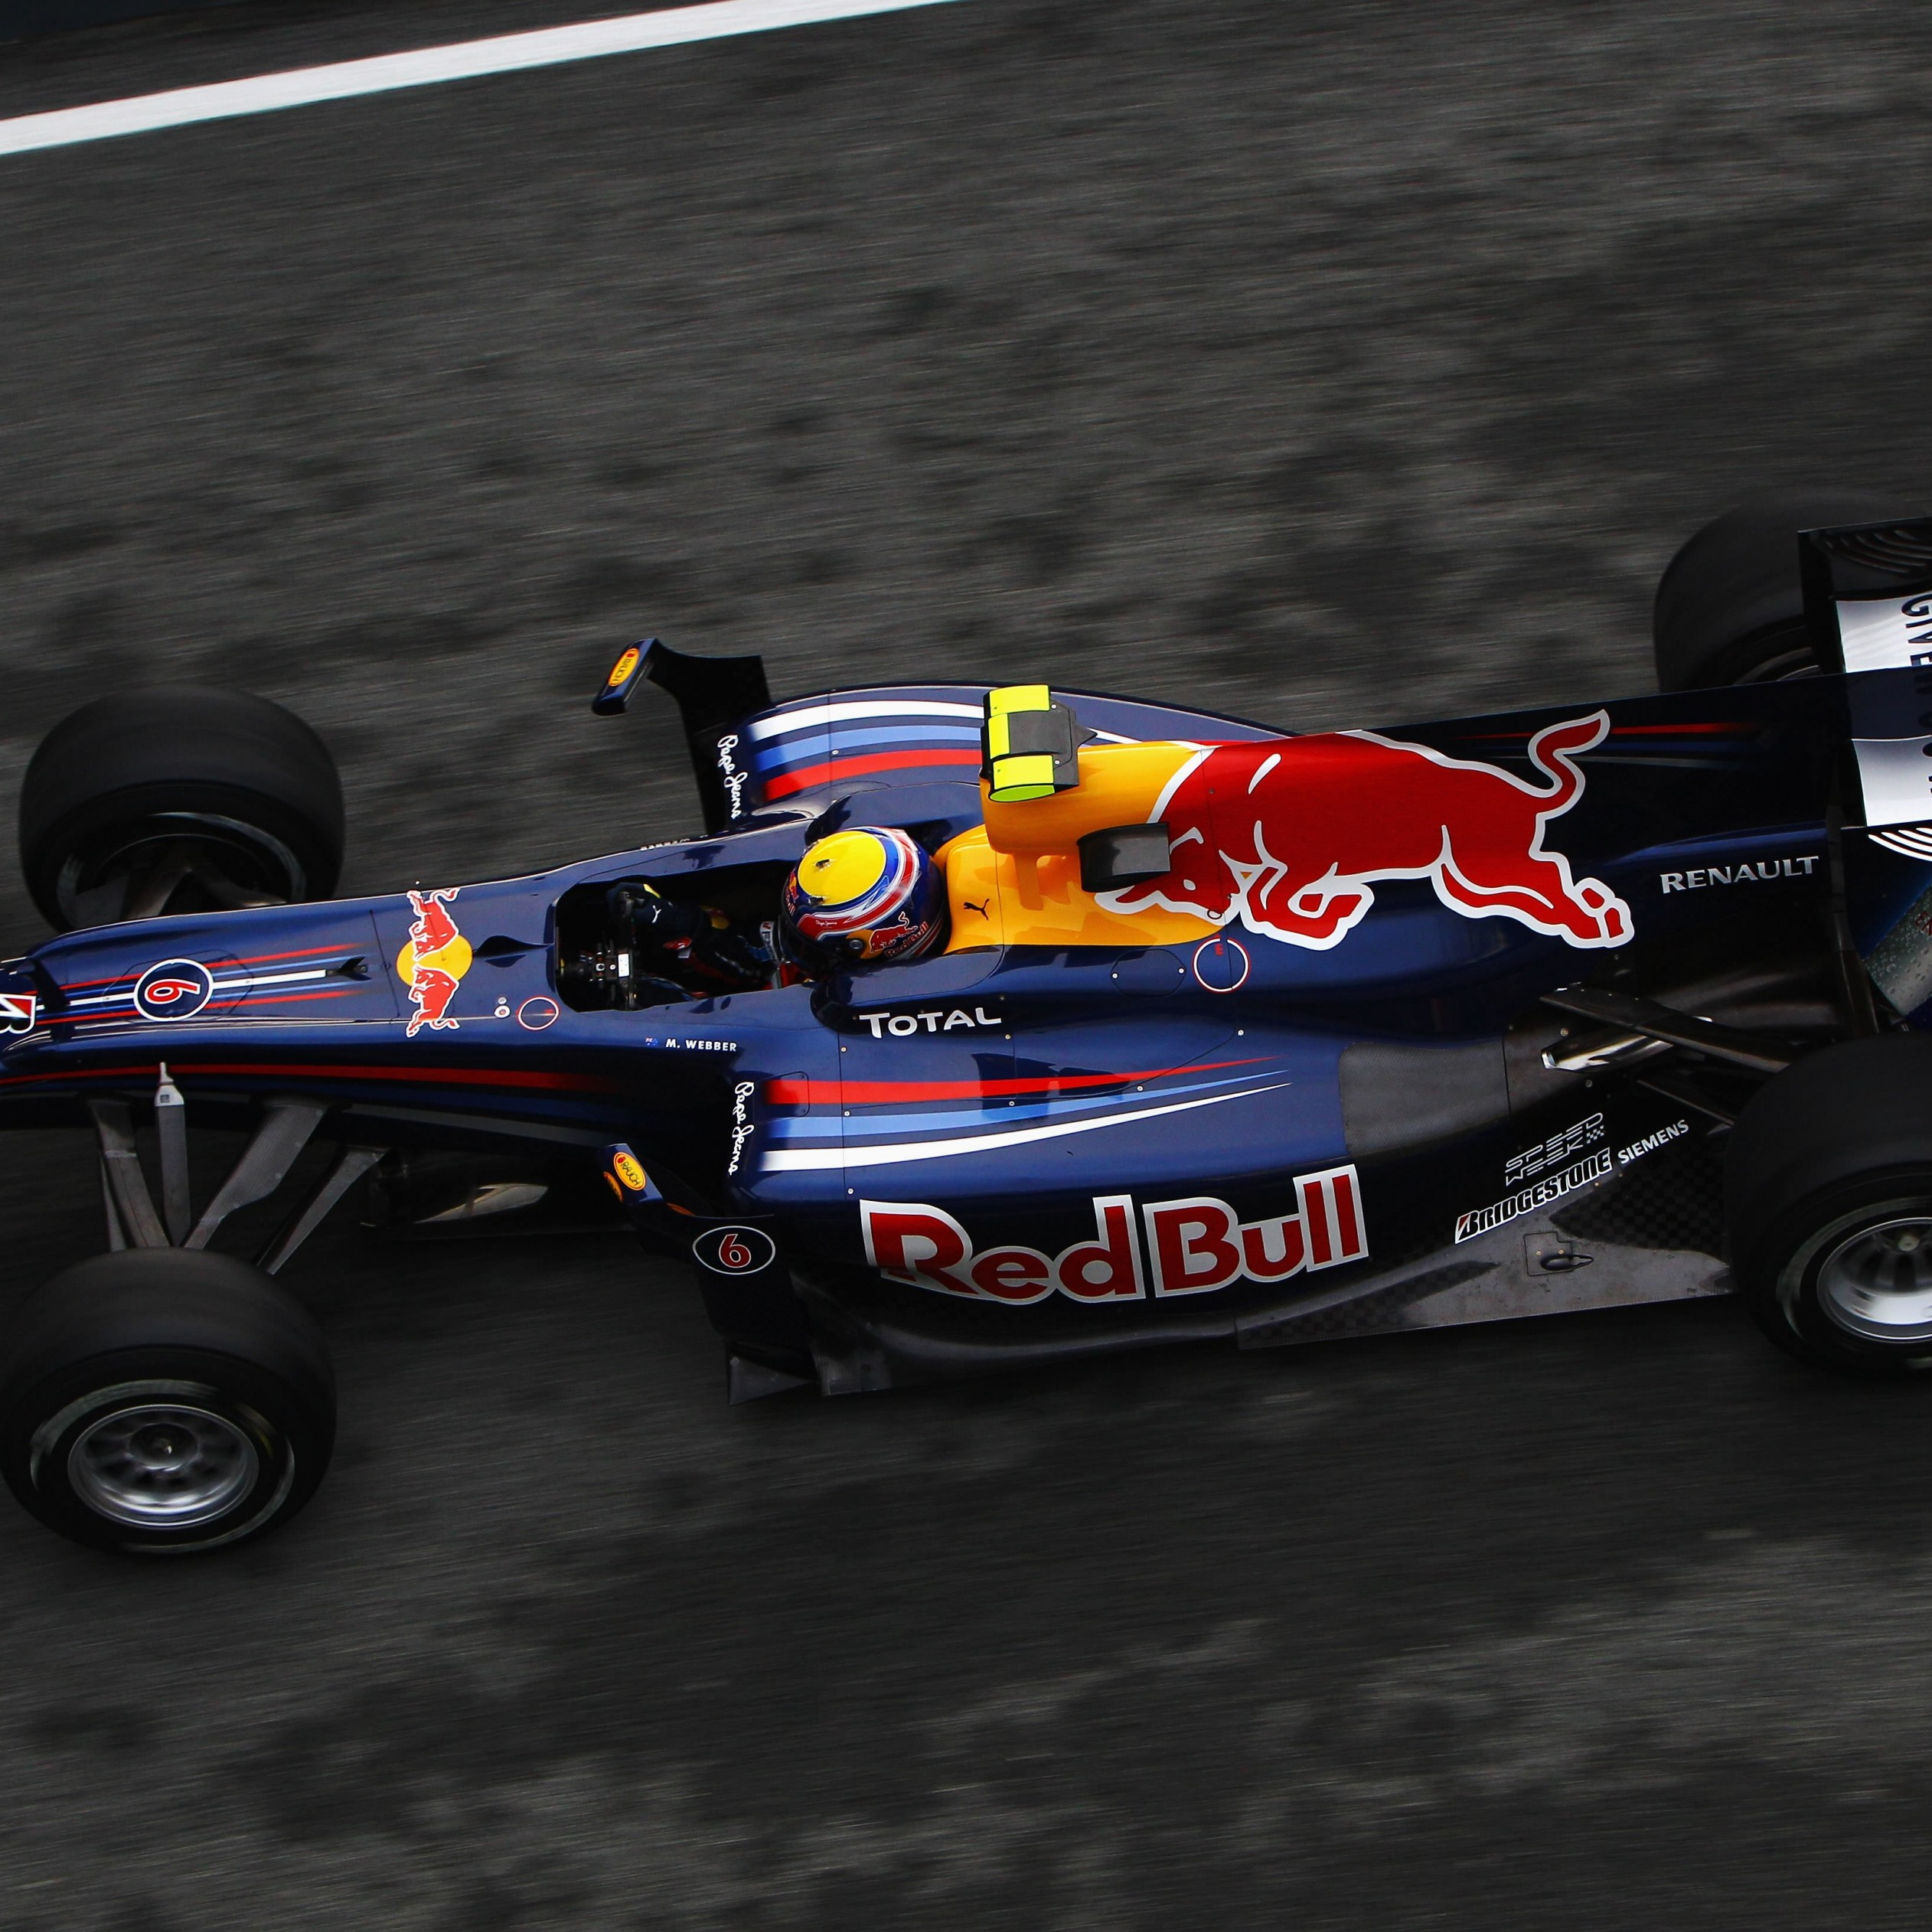 F1 Red Bull Team Wallpaper for Apple iPad Air